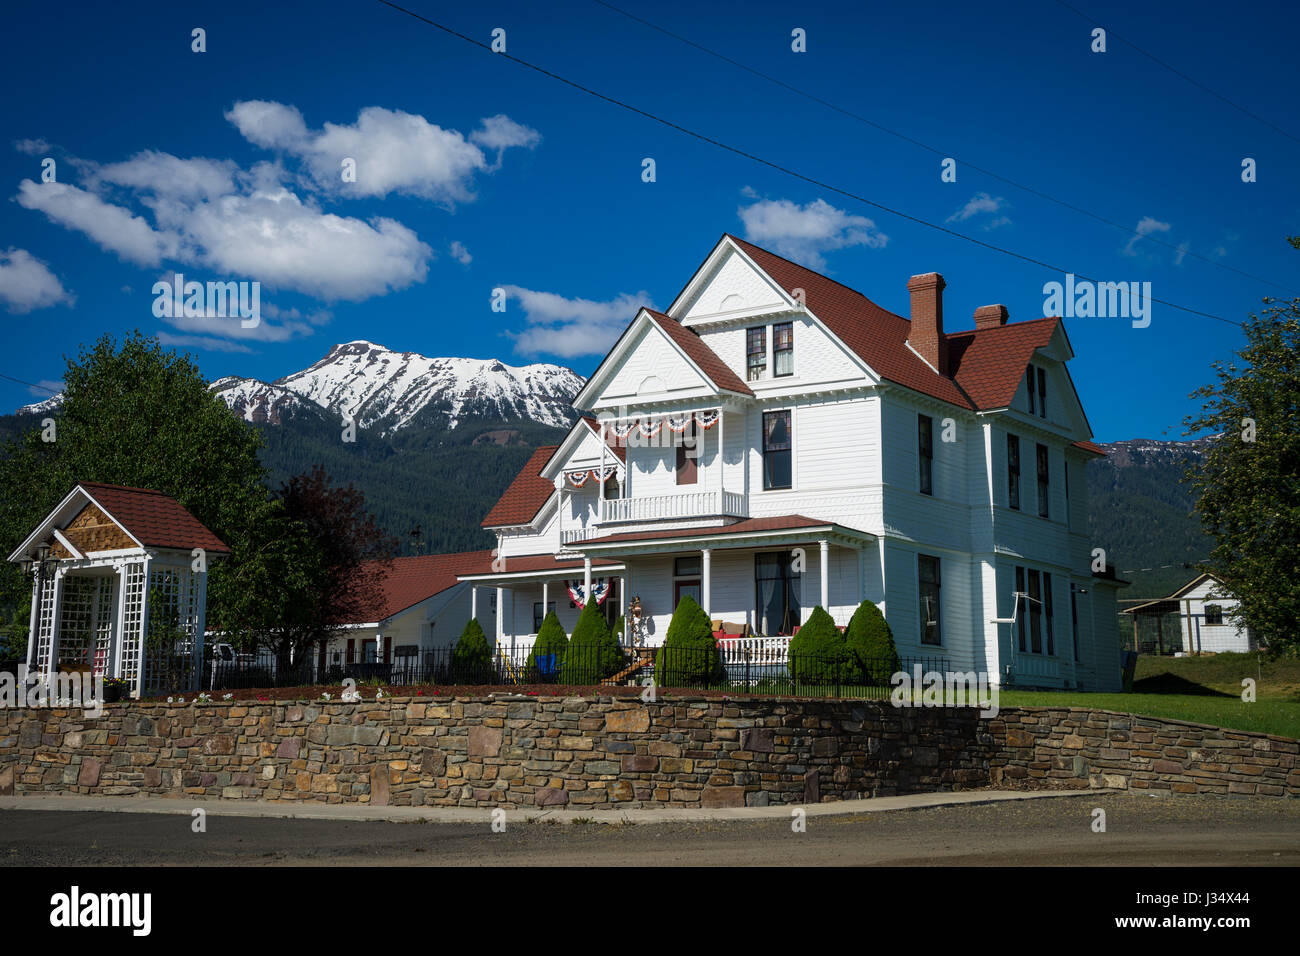 Old White House Near Mountains In Western United States Stock - Mountains in the united states